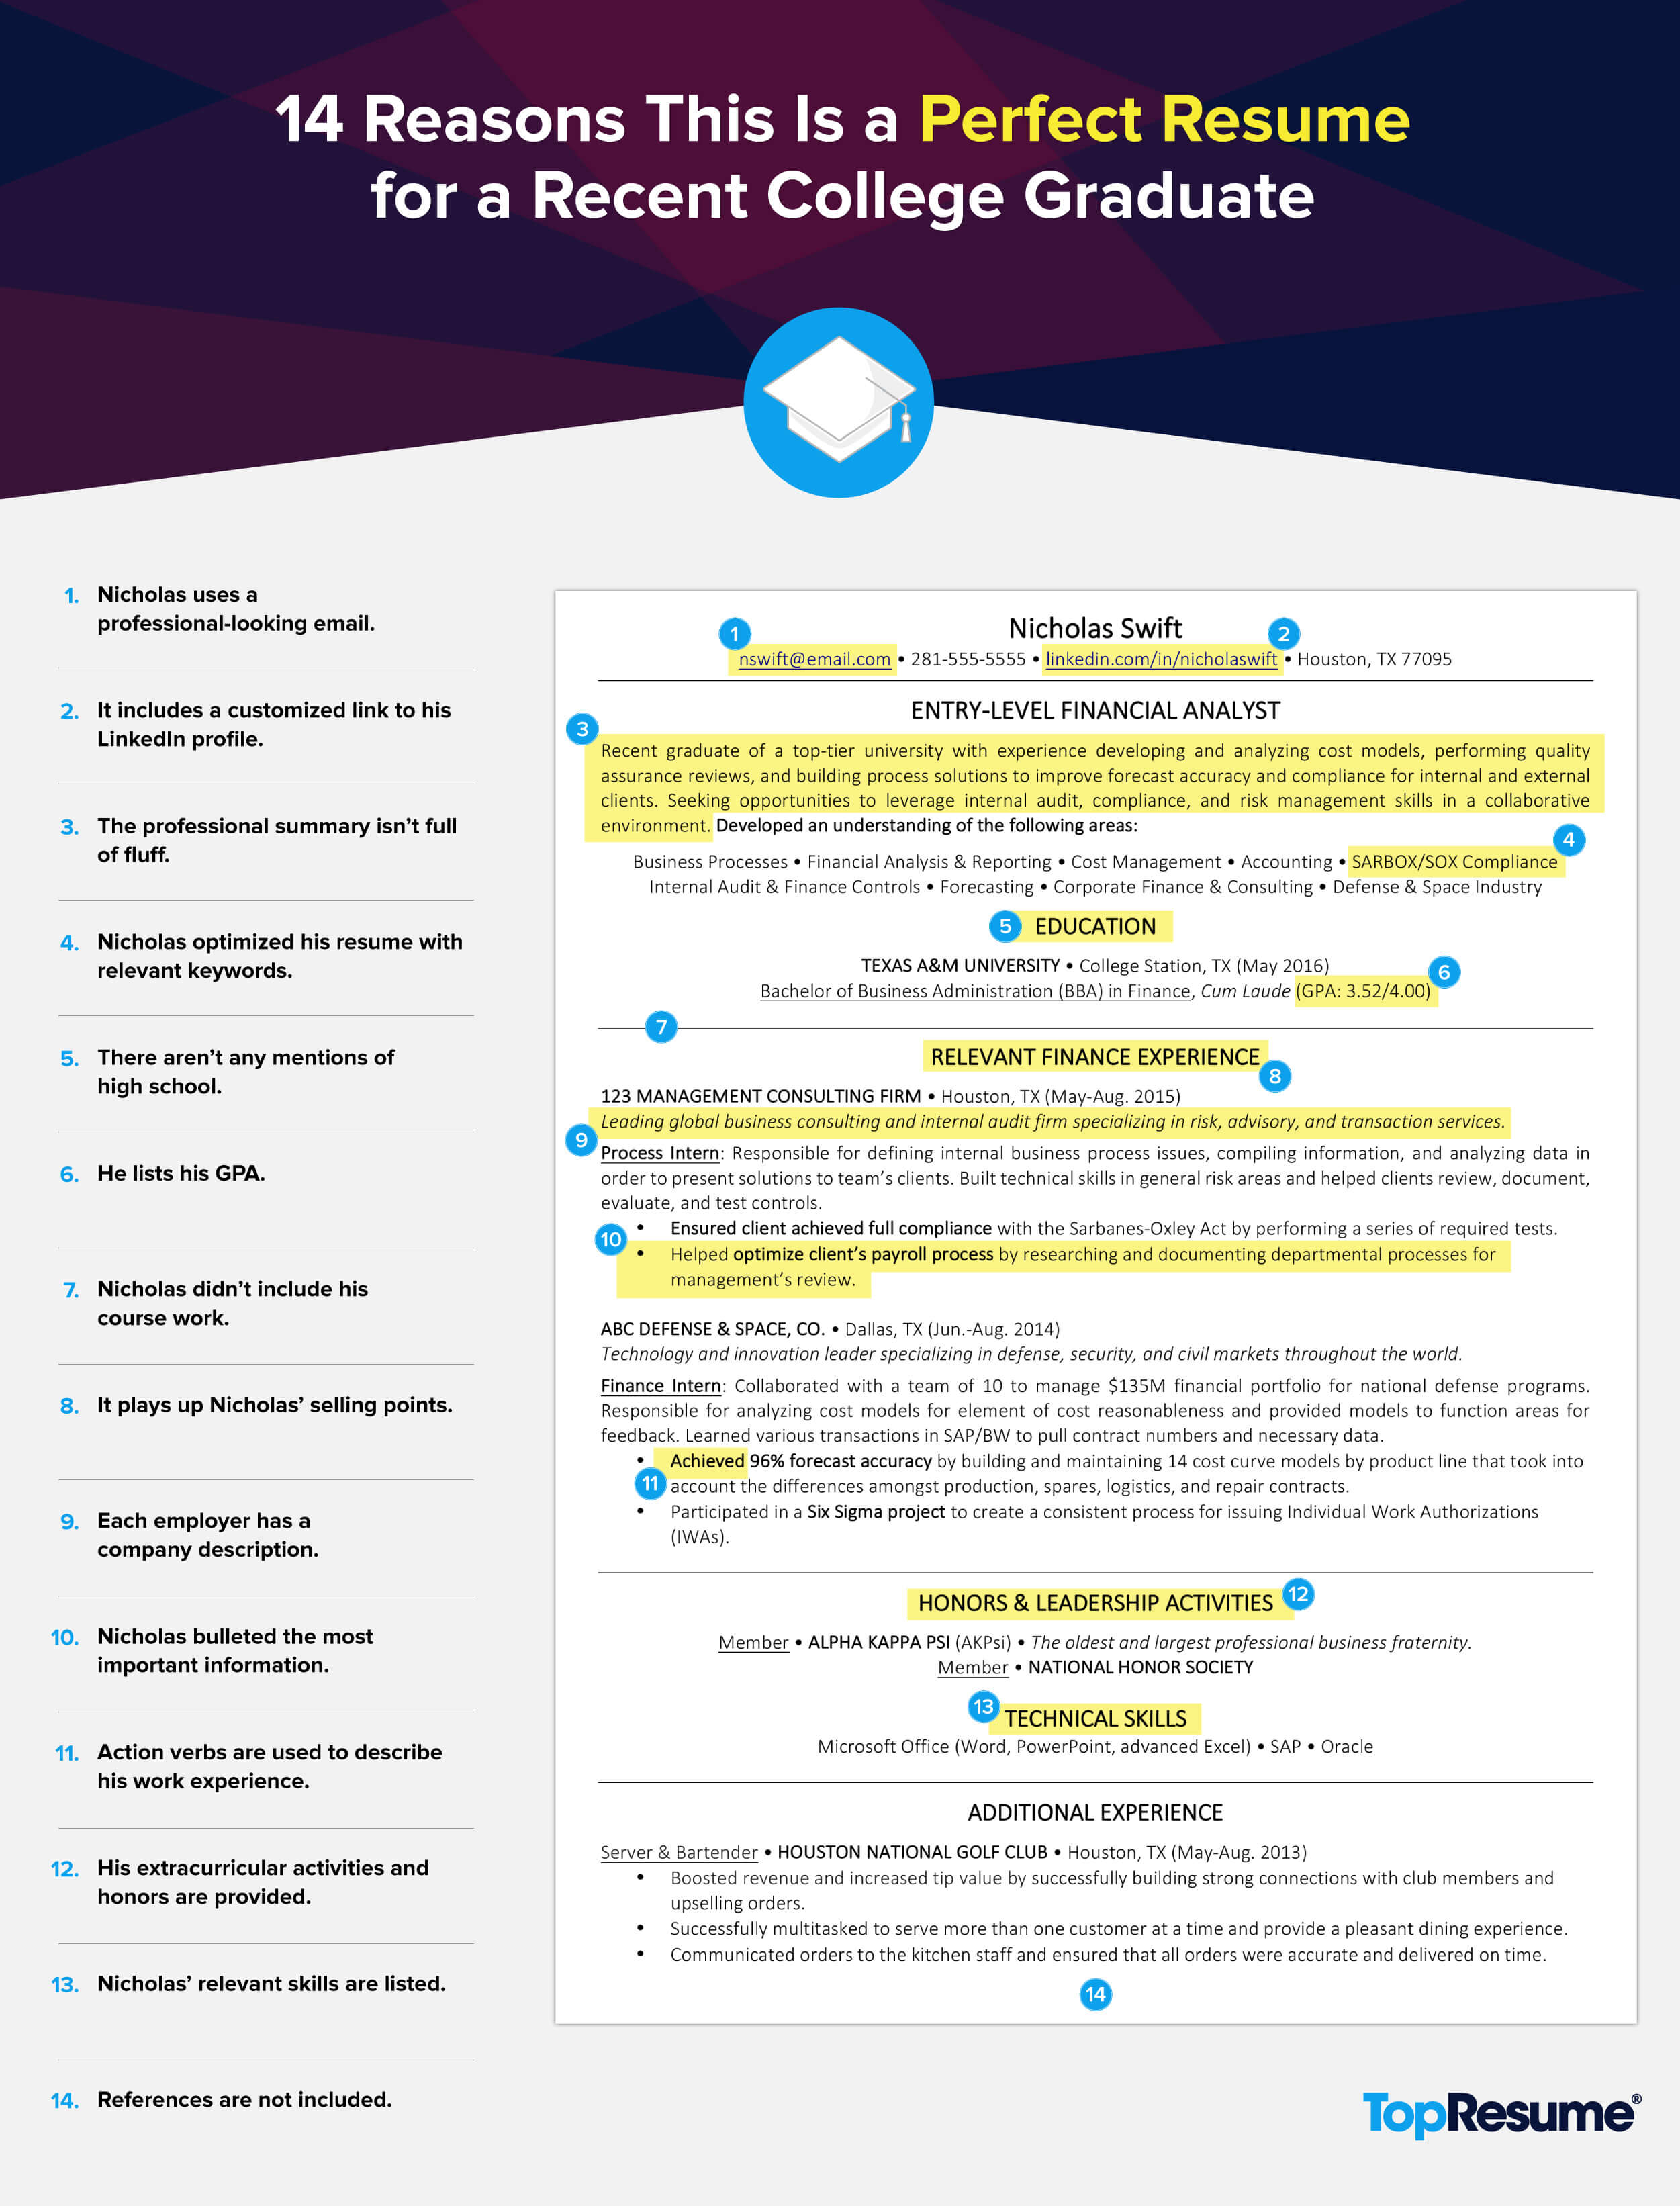 resume College Resume Template 14 reasons this is a perfect recent college graduate resume topresume resume